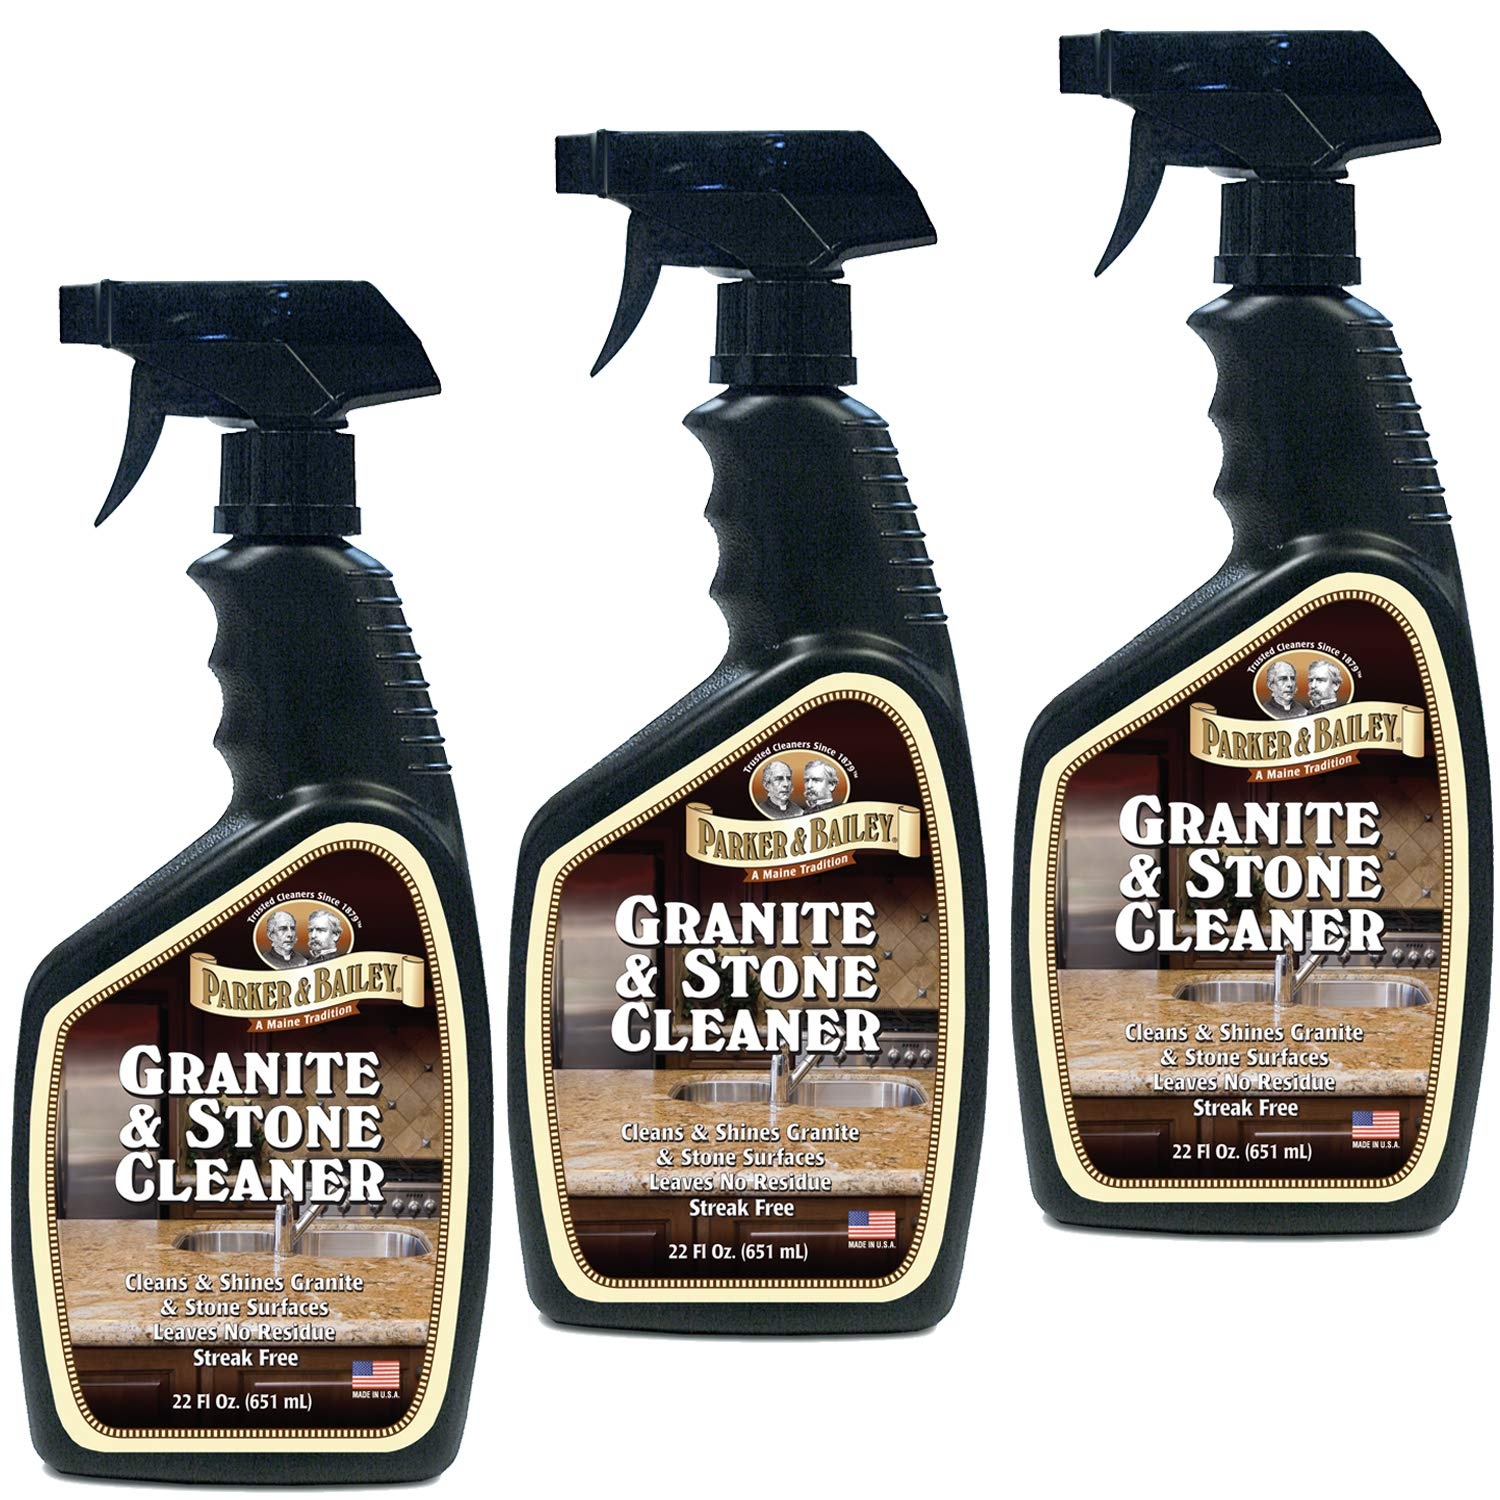 Parker Bailey Granite & Stone Cleaner (Seventy-two Ounce) by Parker & Bailey